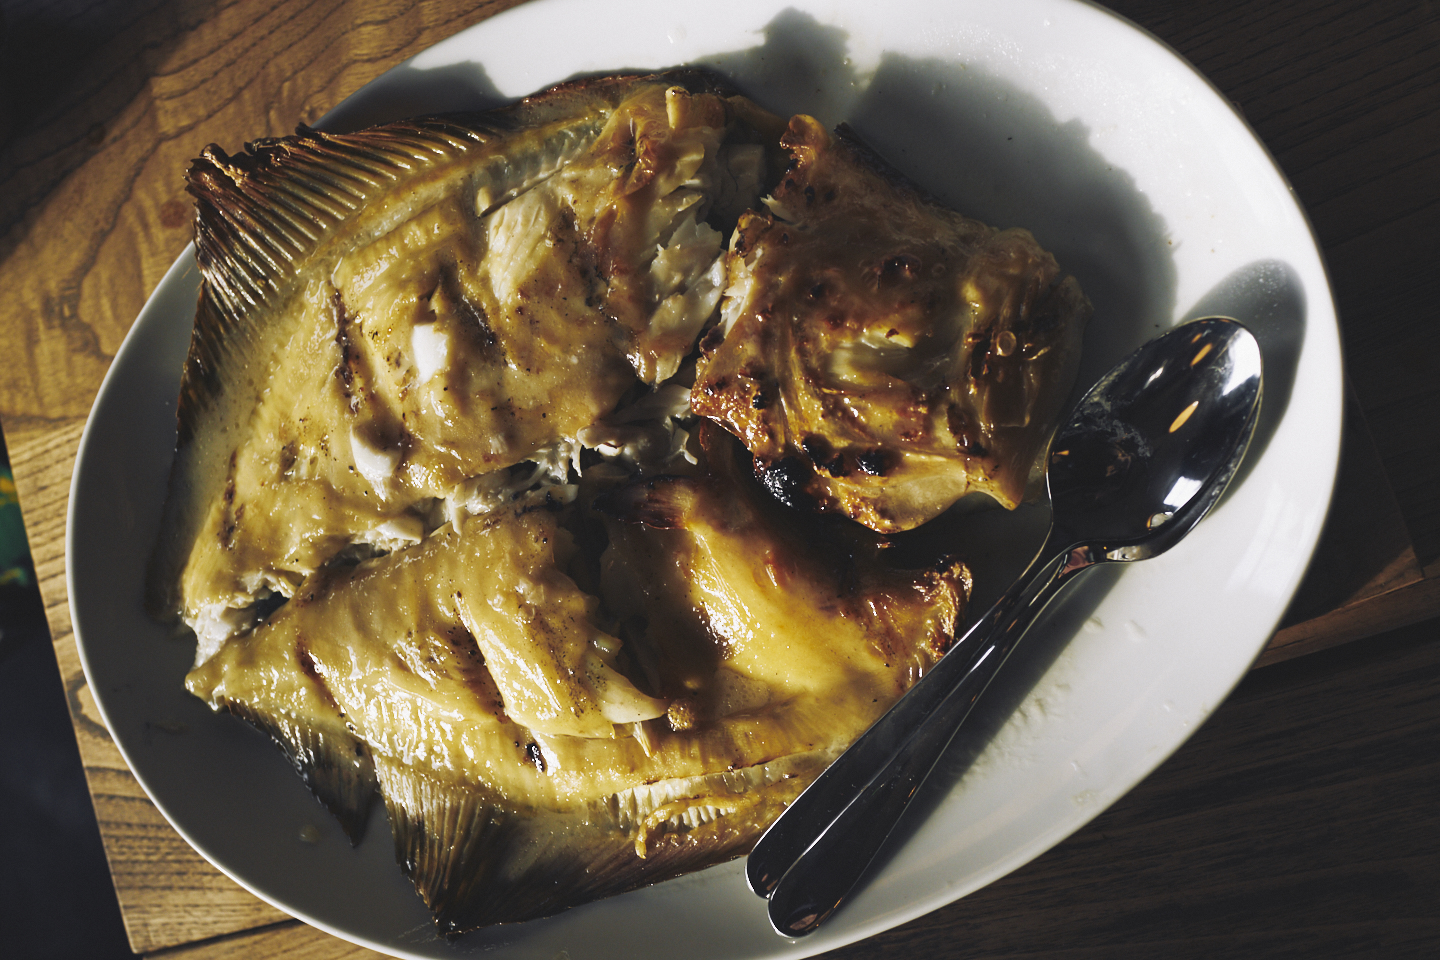 Whole turbot at Brat restaurant, one of London's iconic dishes